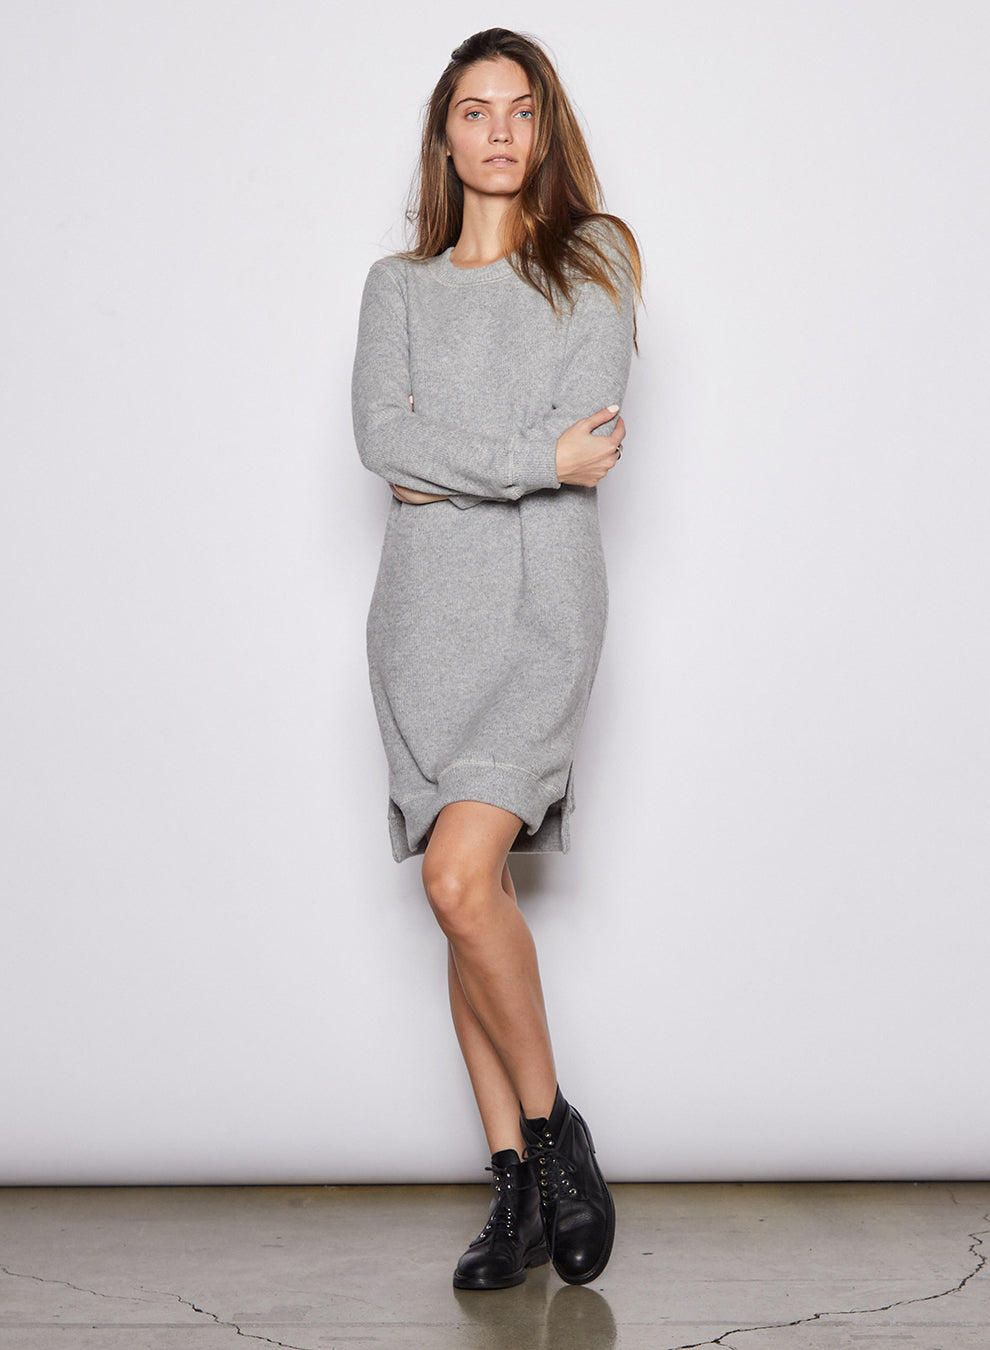 SAM & LAVI Emma Dress